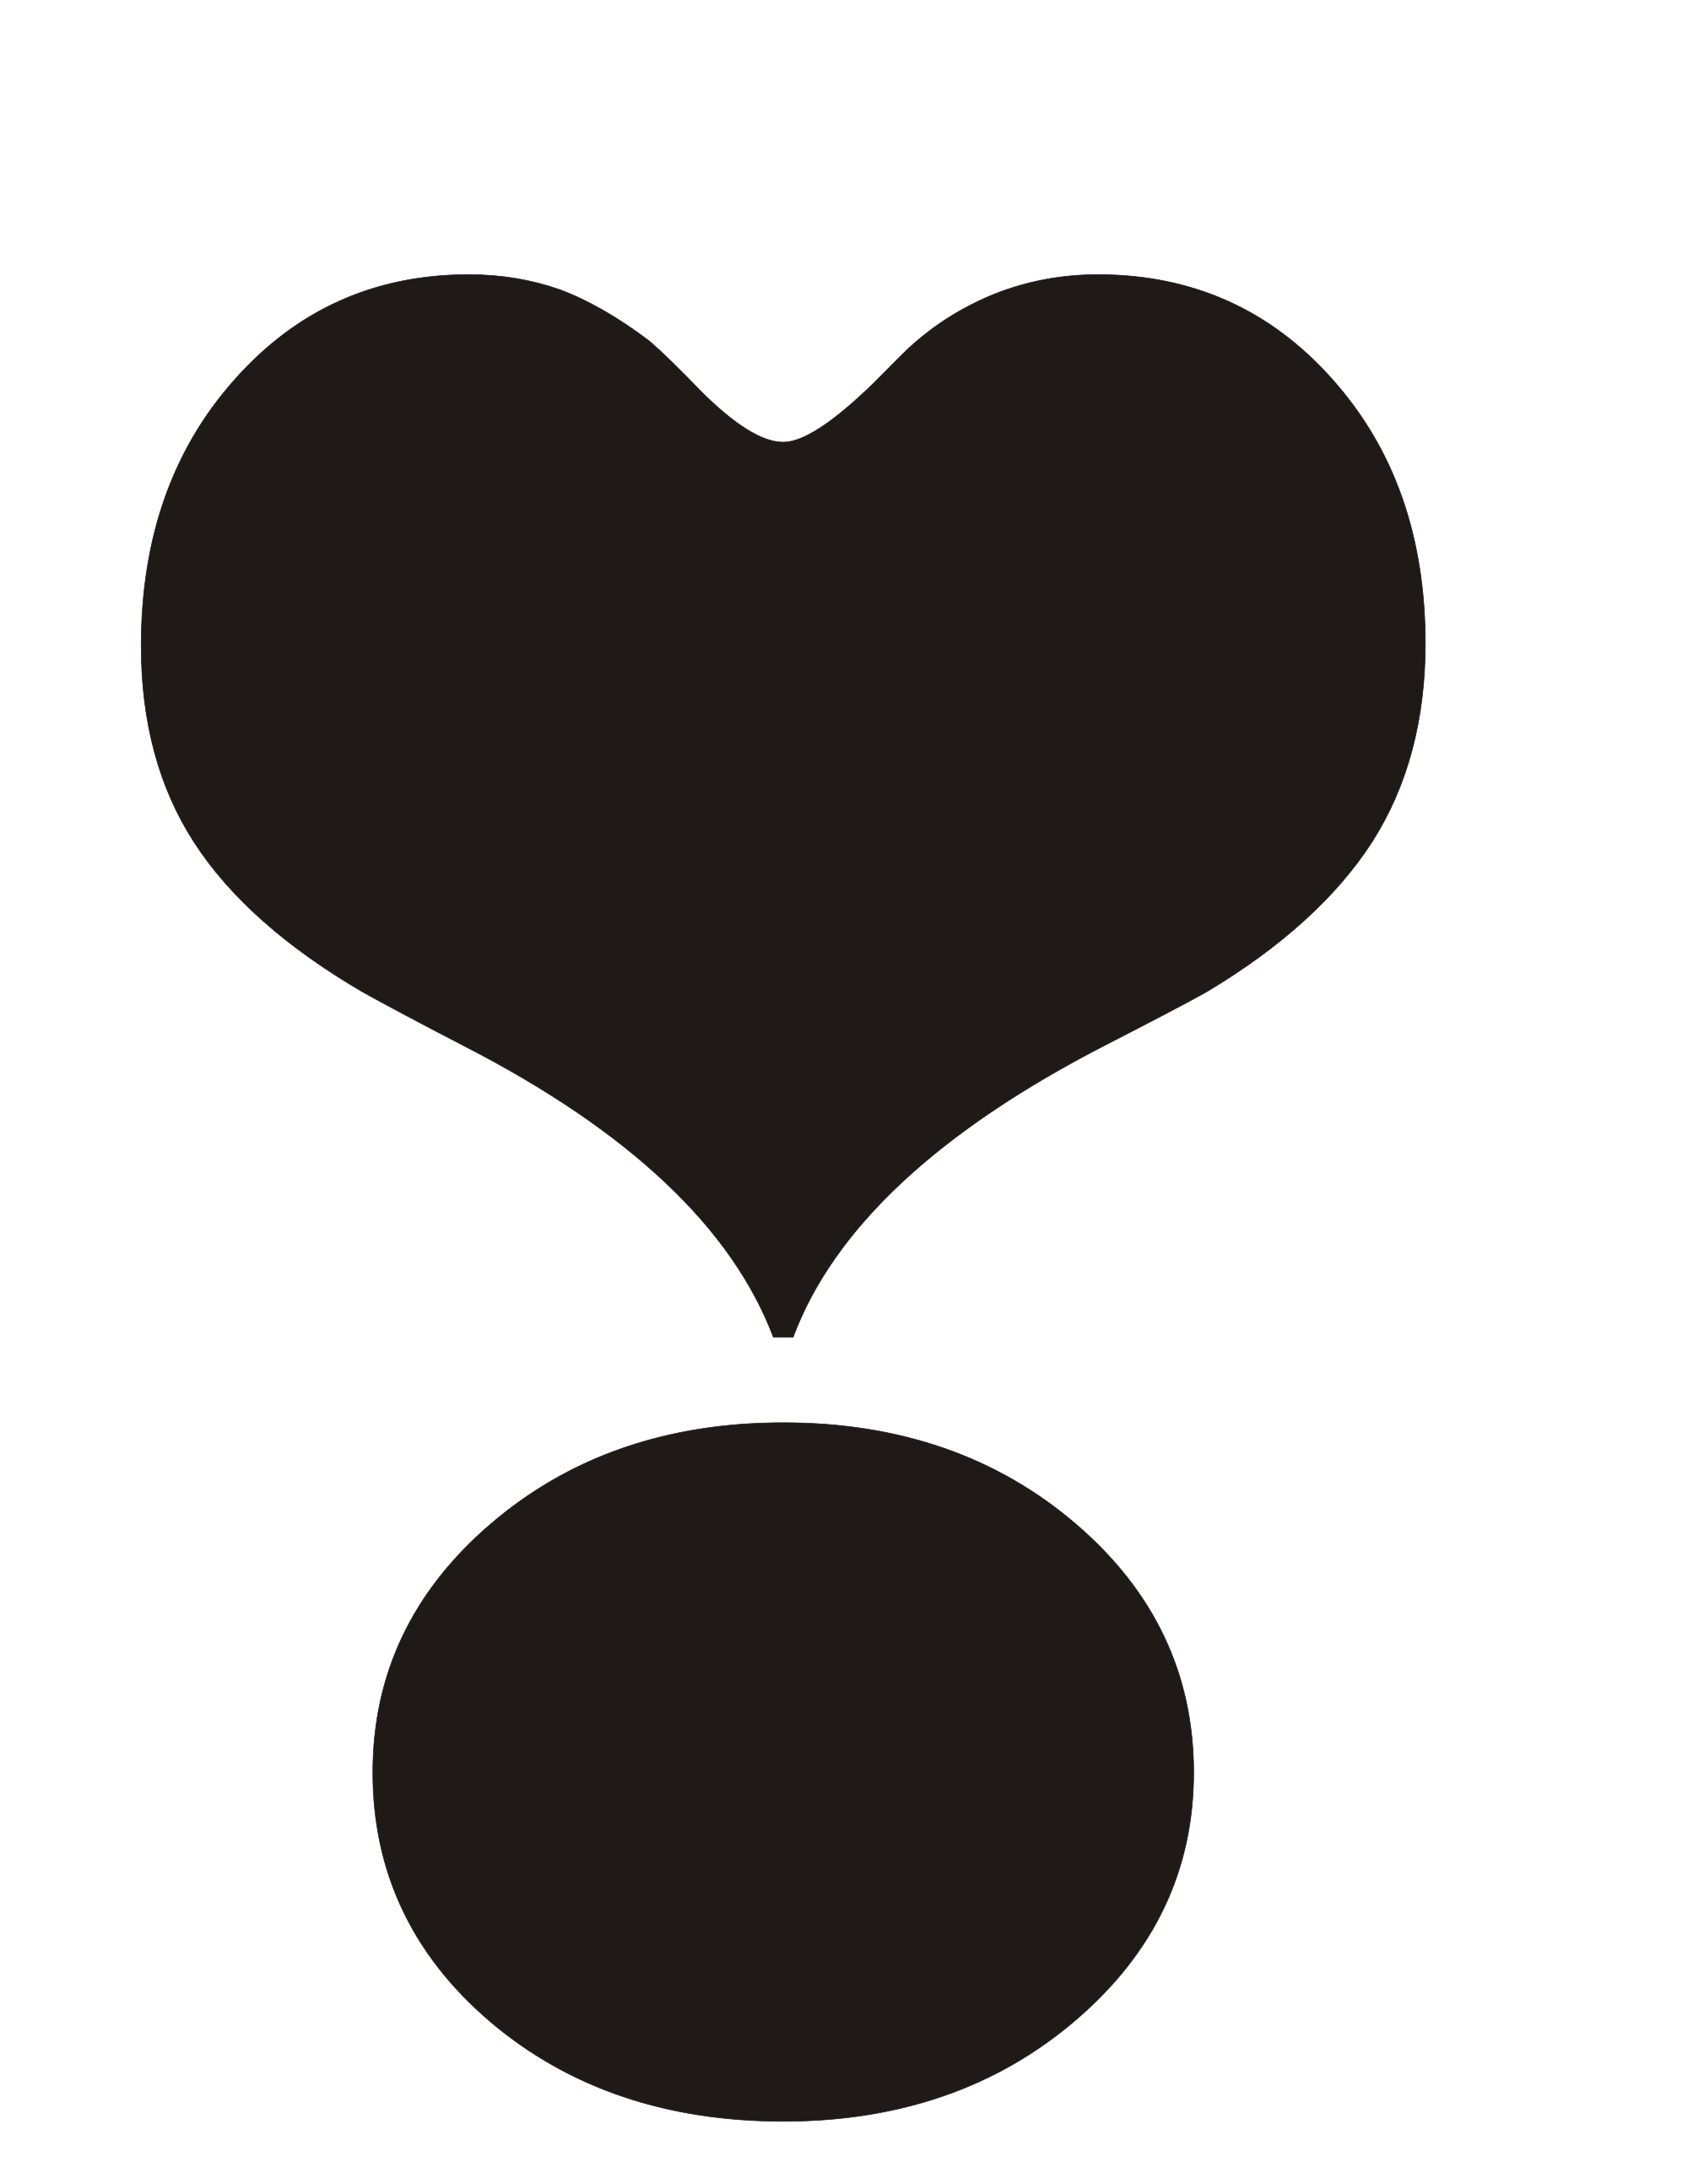 Thumb clipart mark. File exclamation heart black